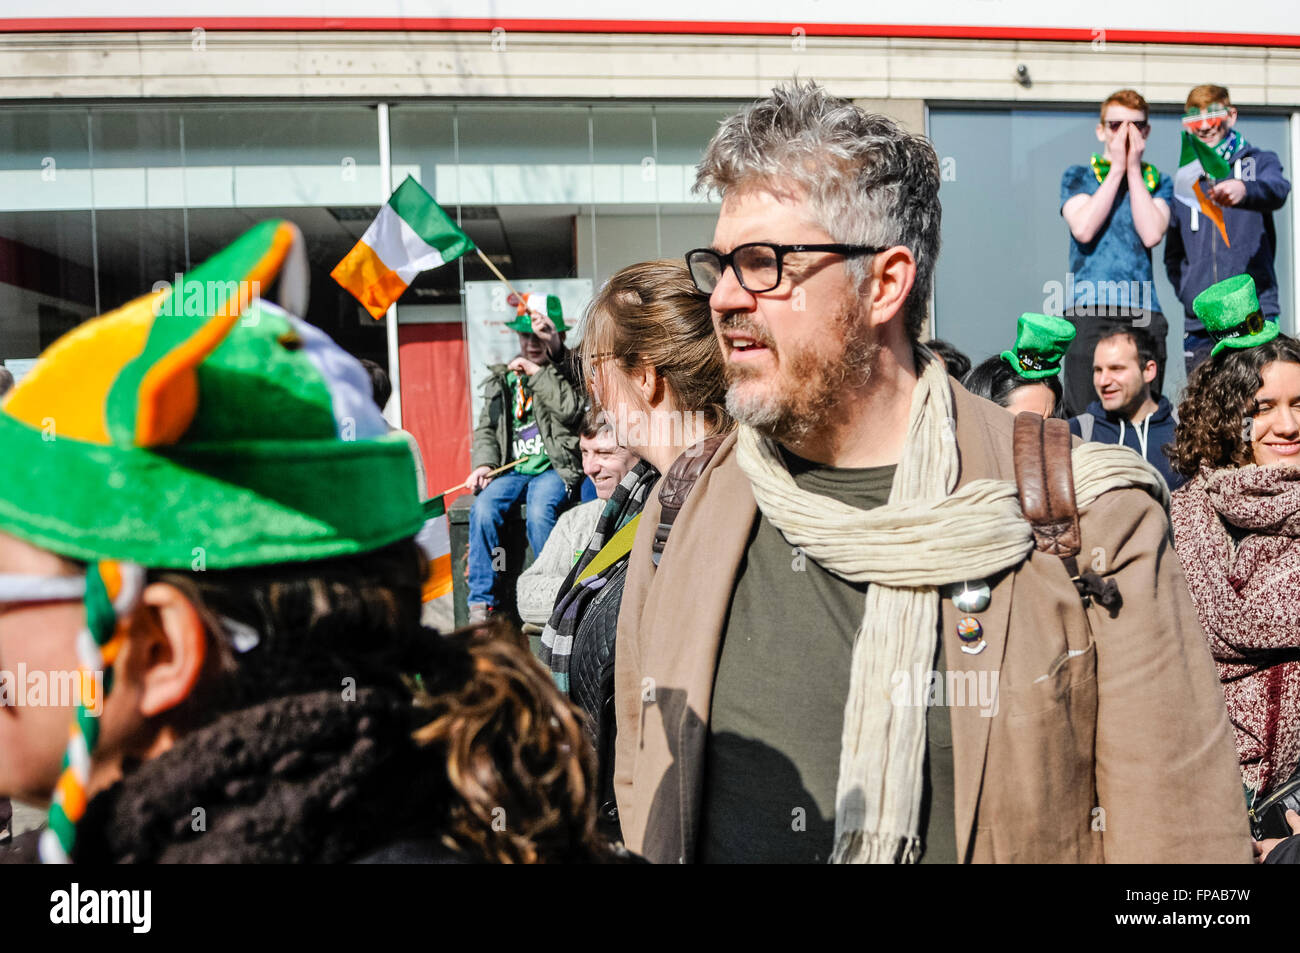 Belfast, Northern Ireland, UK. 17th March, 2016. Comedian Phil Jupitus joins the crowd to watch the annual Saint - Stock Image